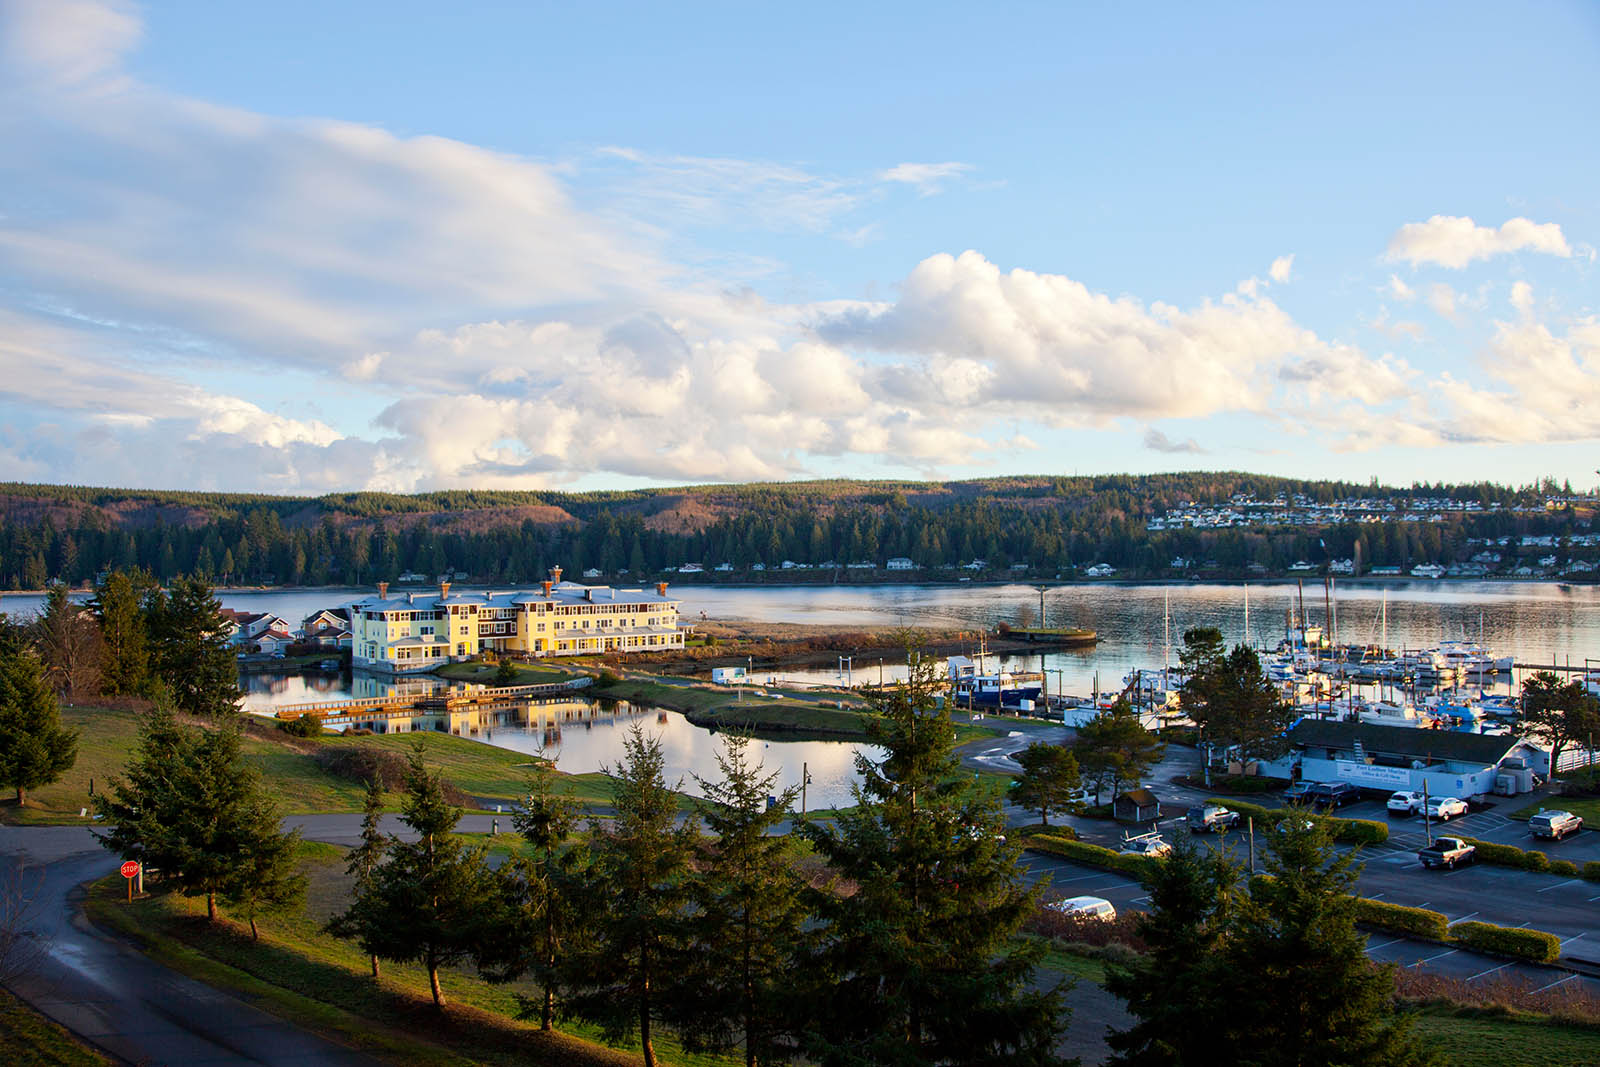 Golf Course Marina Inn Dining And Homes In Port Ludlow